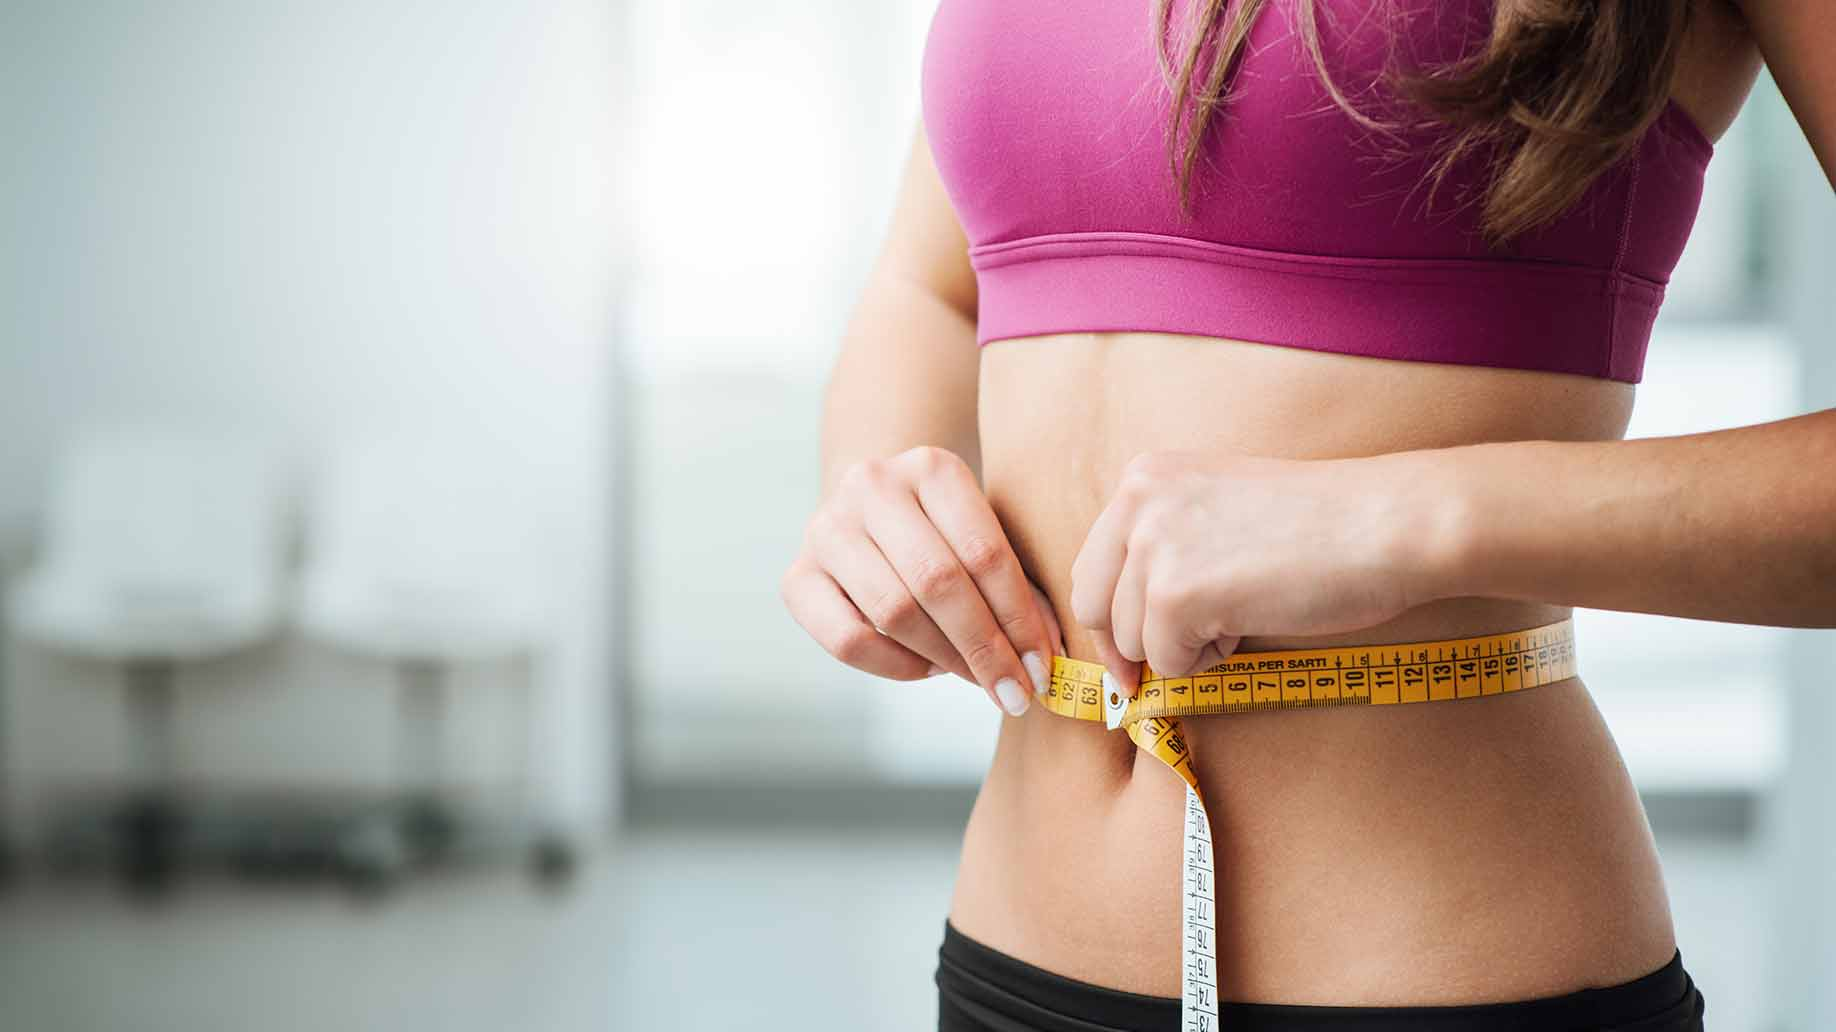 7 Natural Home Remedies For Weight Loss